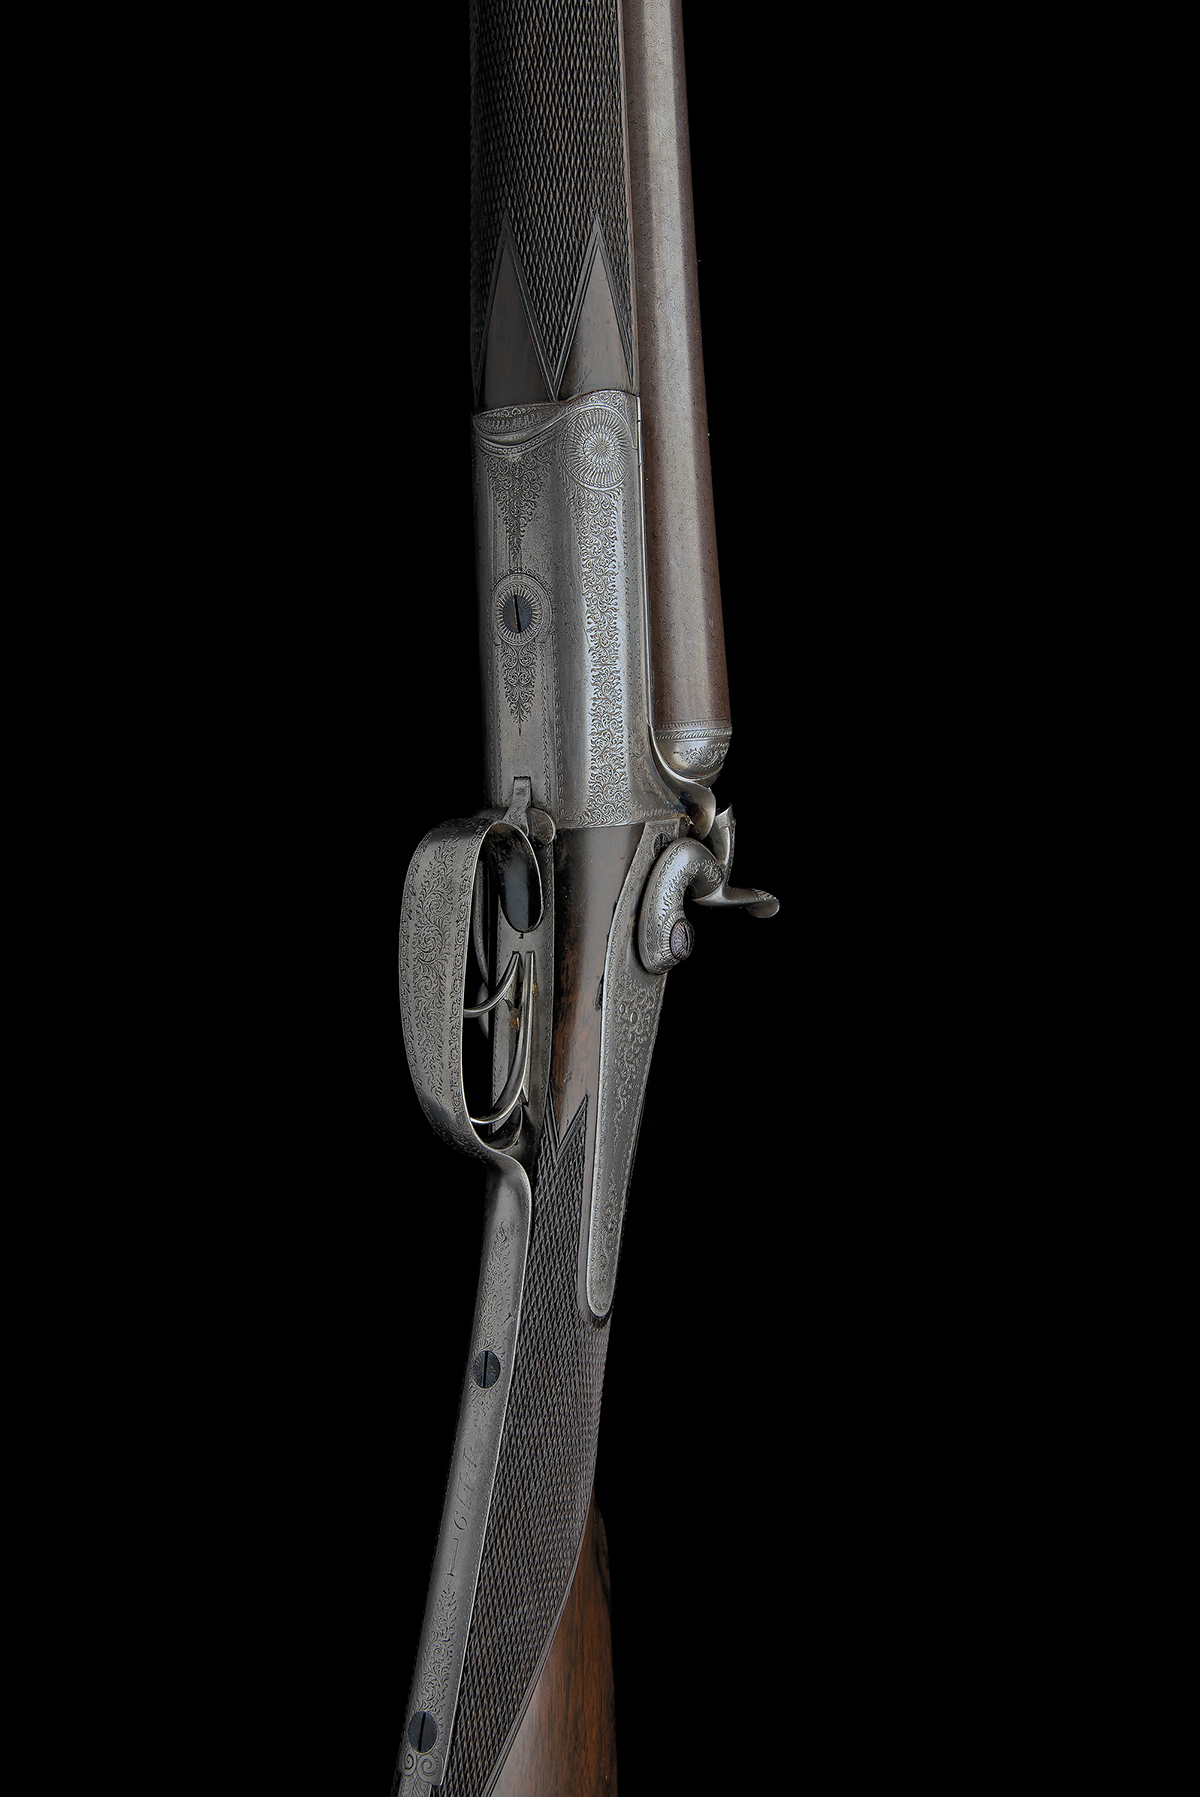 STEPHEN GRANT A 12-BORE 1871 PATENT SIDELEVER HAMMERGUN, serial no. 4419, for 1875, 30in. nitro - Image 4 of 8